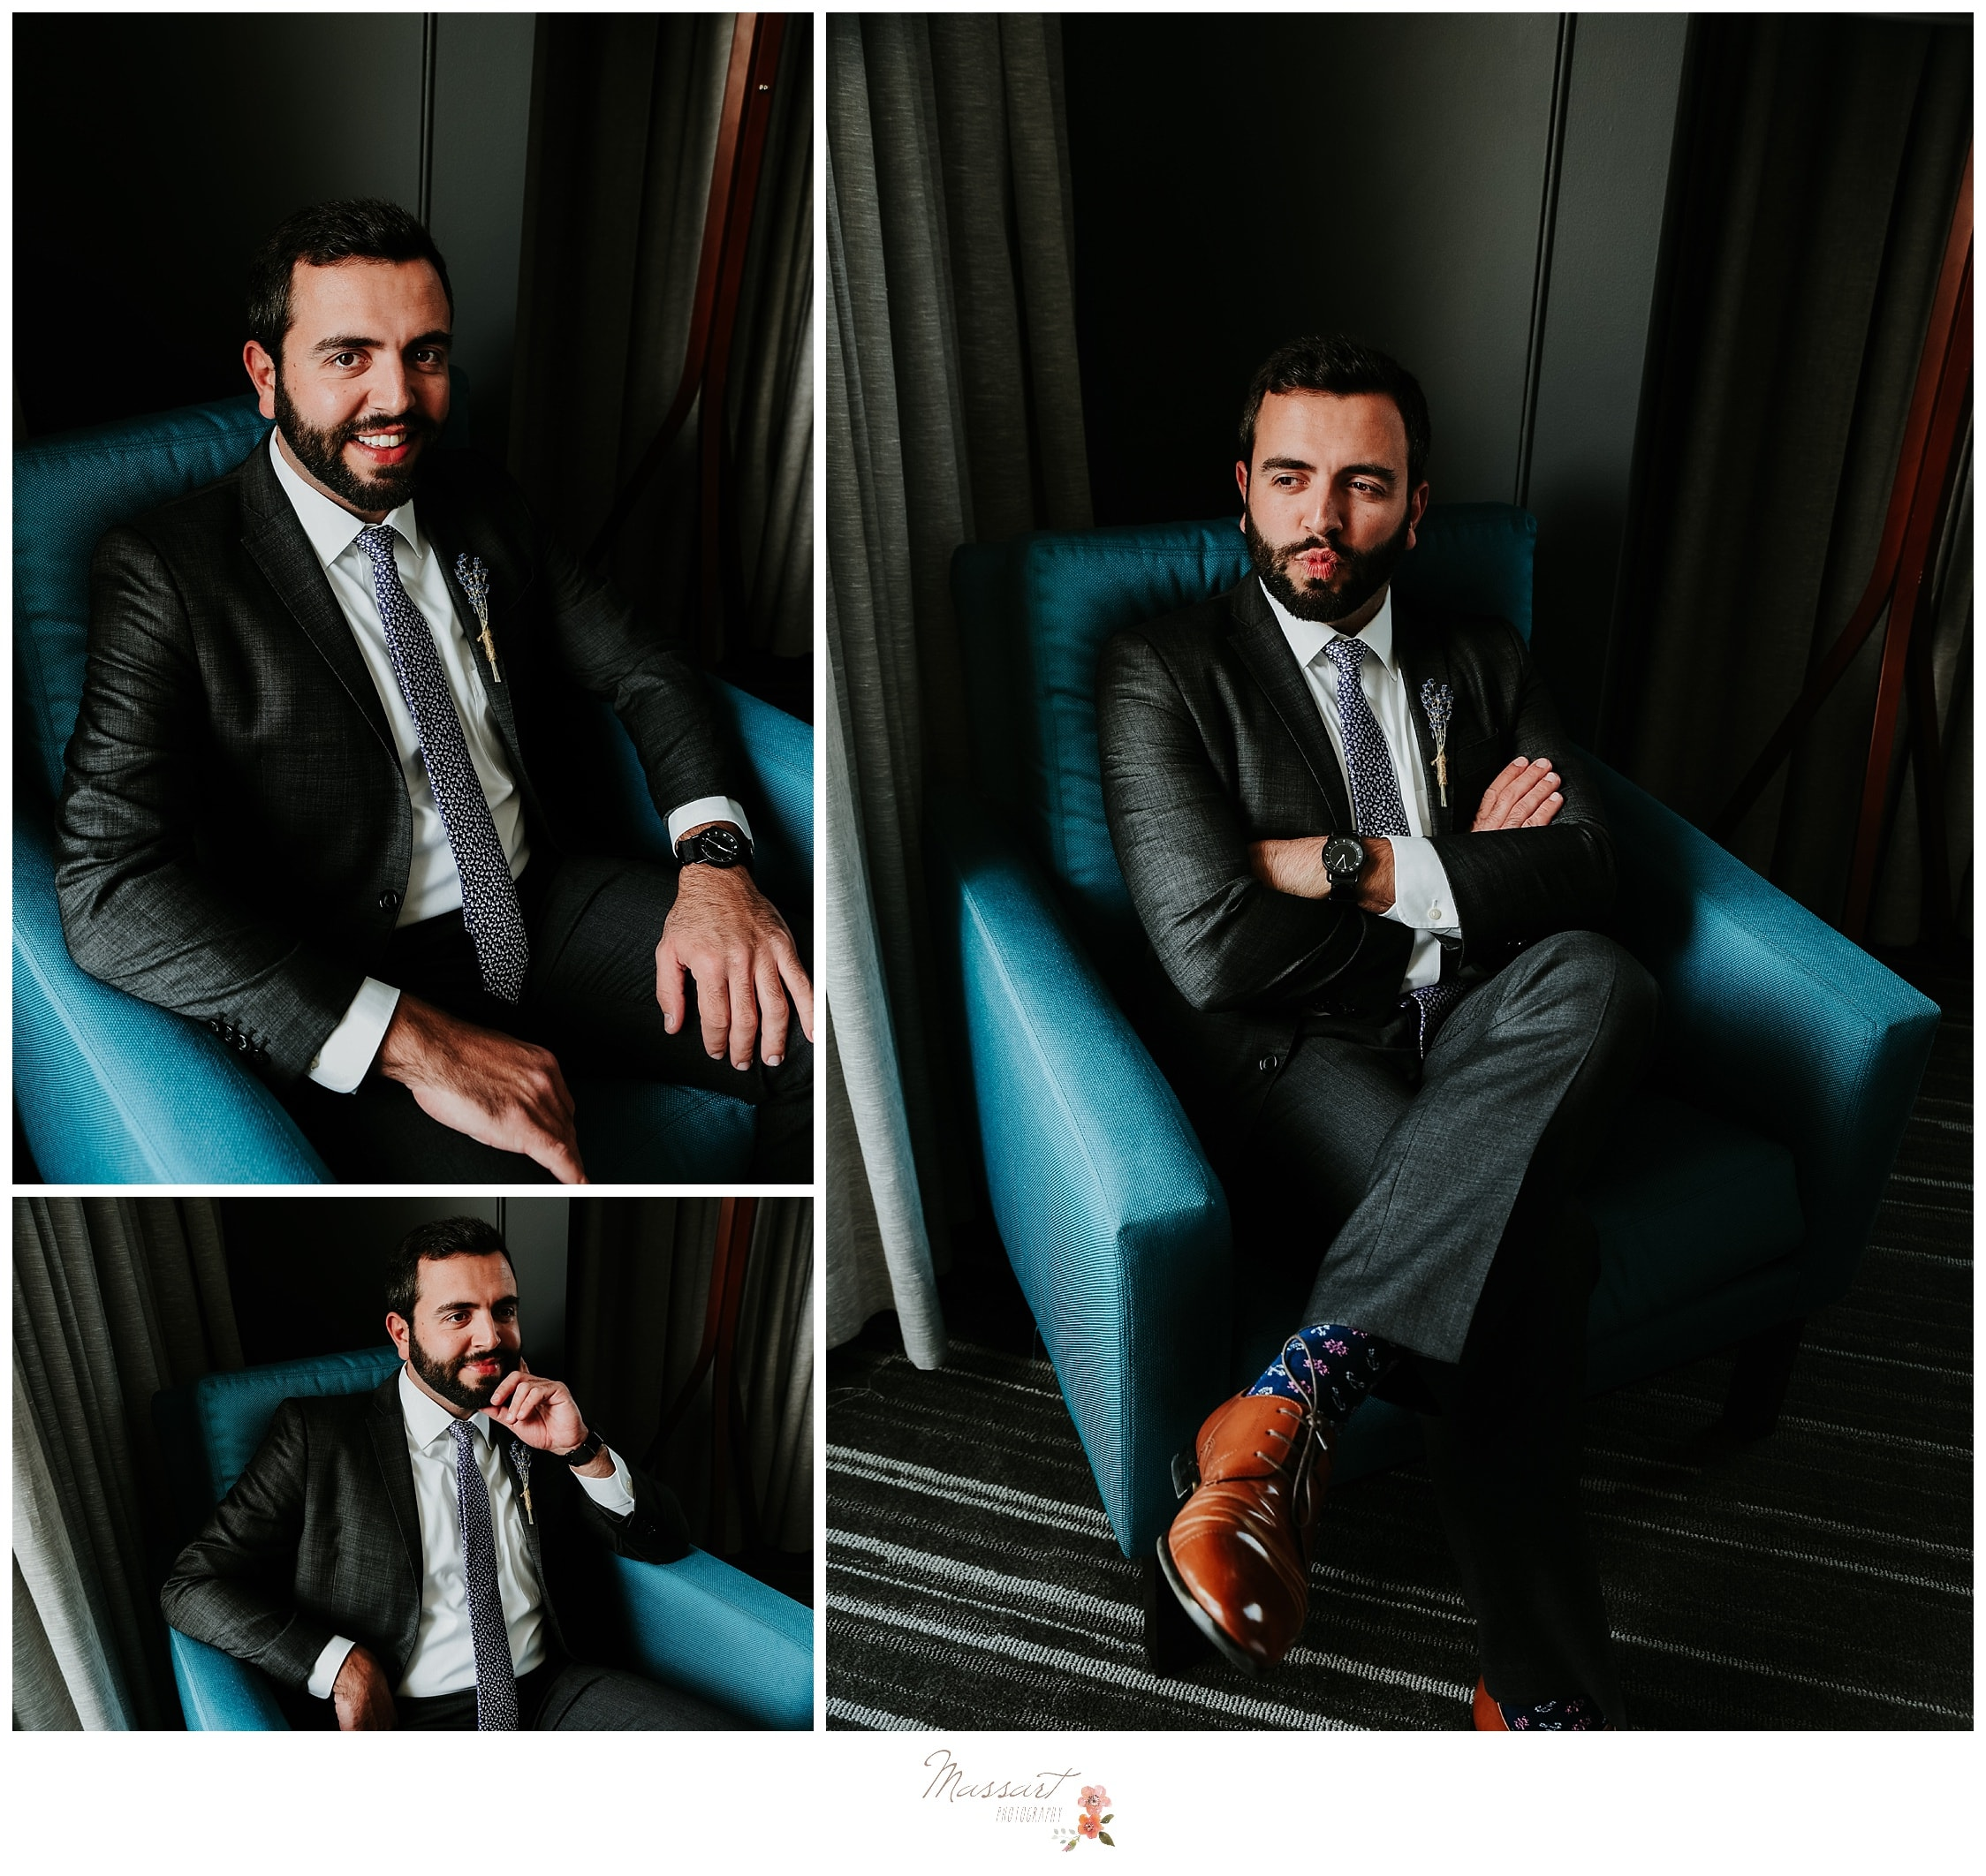 Formal portraits of the groom dressed in his tux photographed by Massart Photography Rhode Island